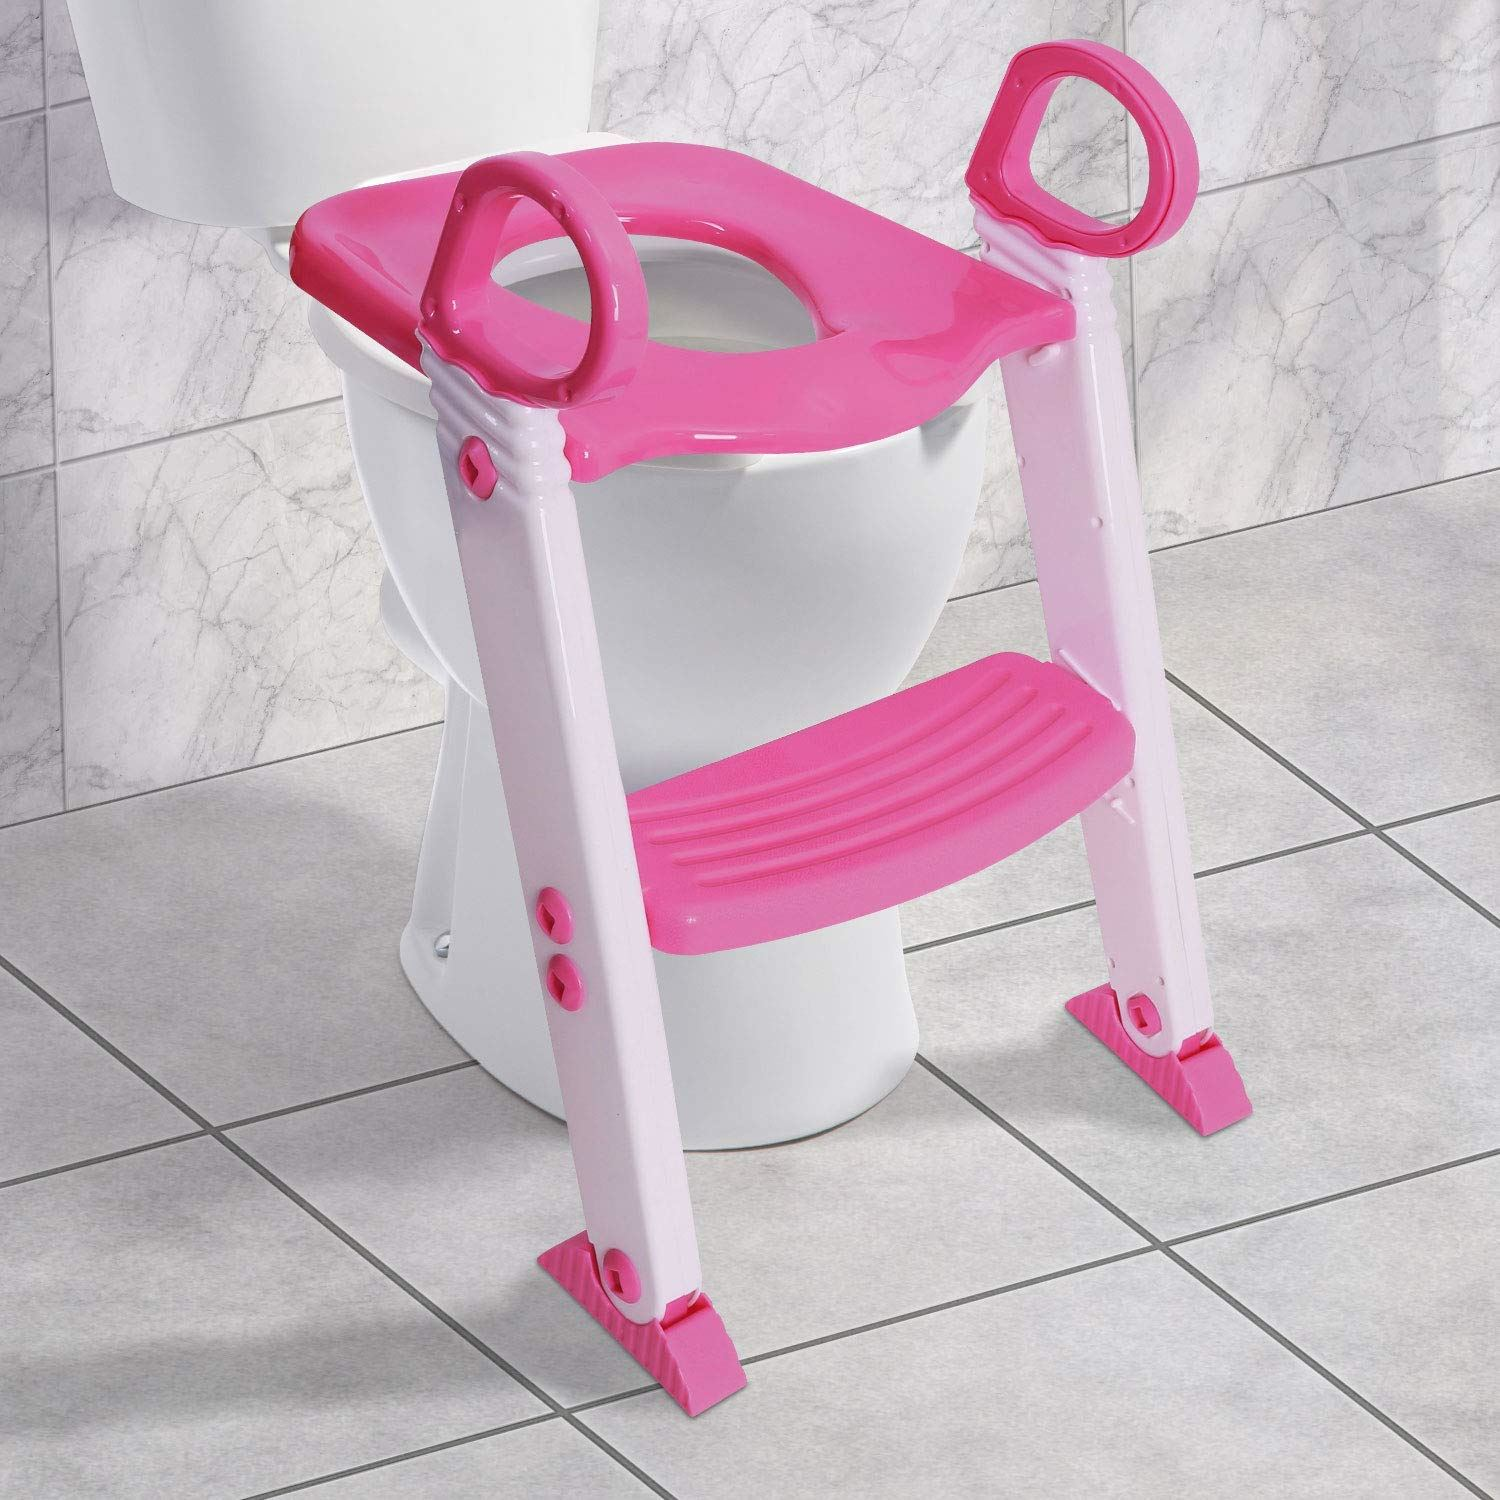 Tremendous Details About Baby Toddler Ladder Step Potty Training Toilet Seat Gripper Handles Pink Creativecarmelina Interior Chair Design Creativecarmelinacom